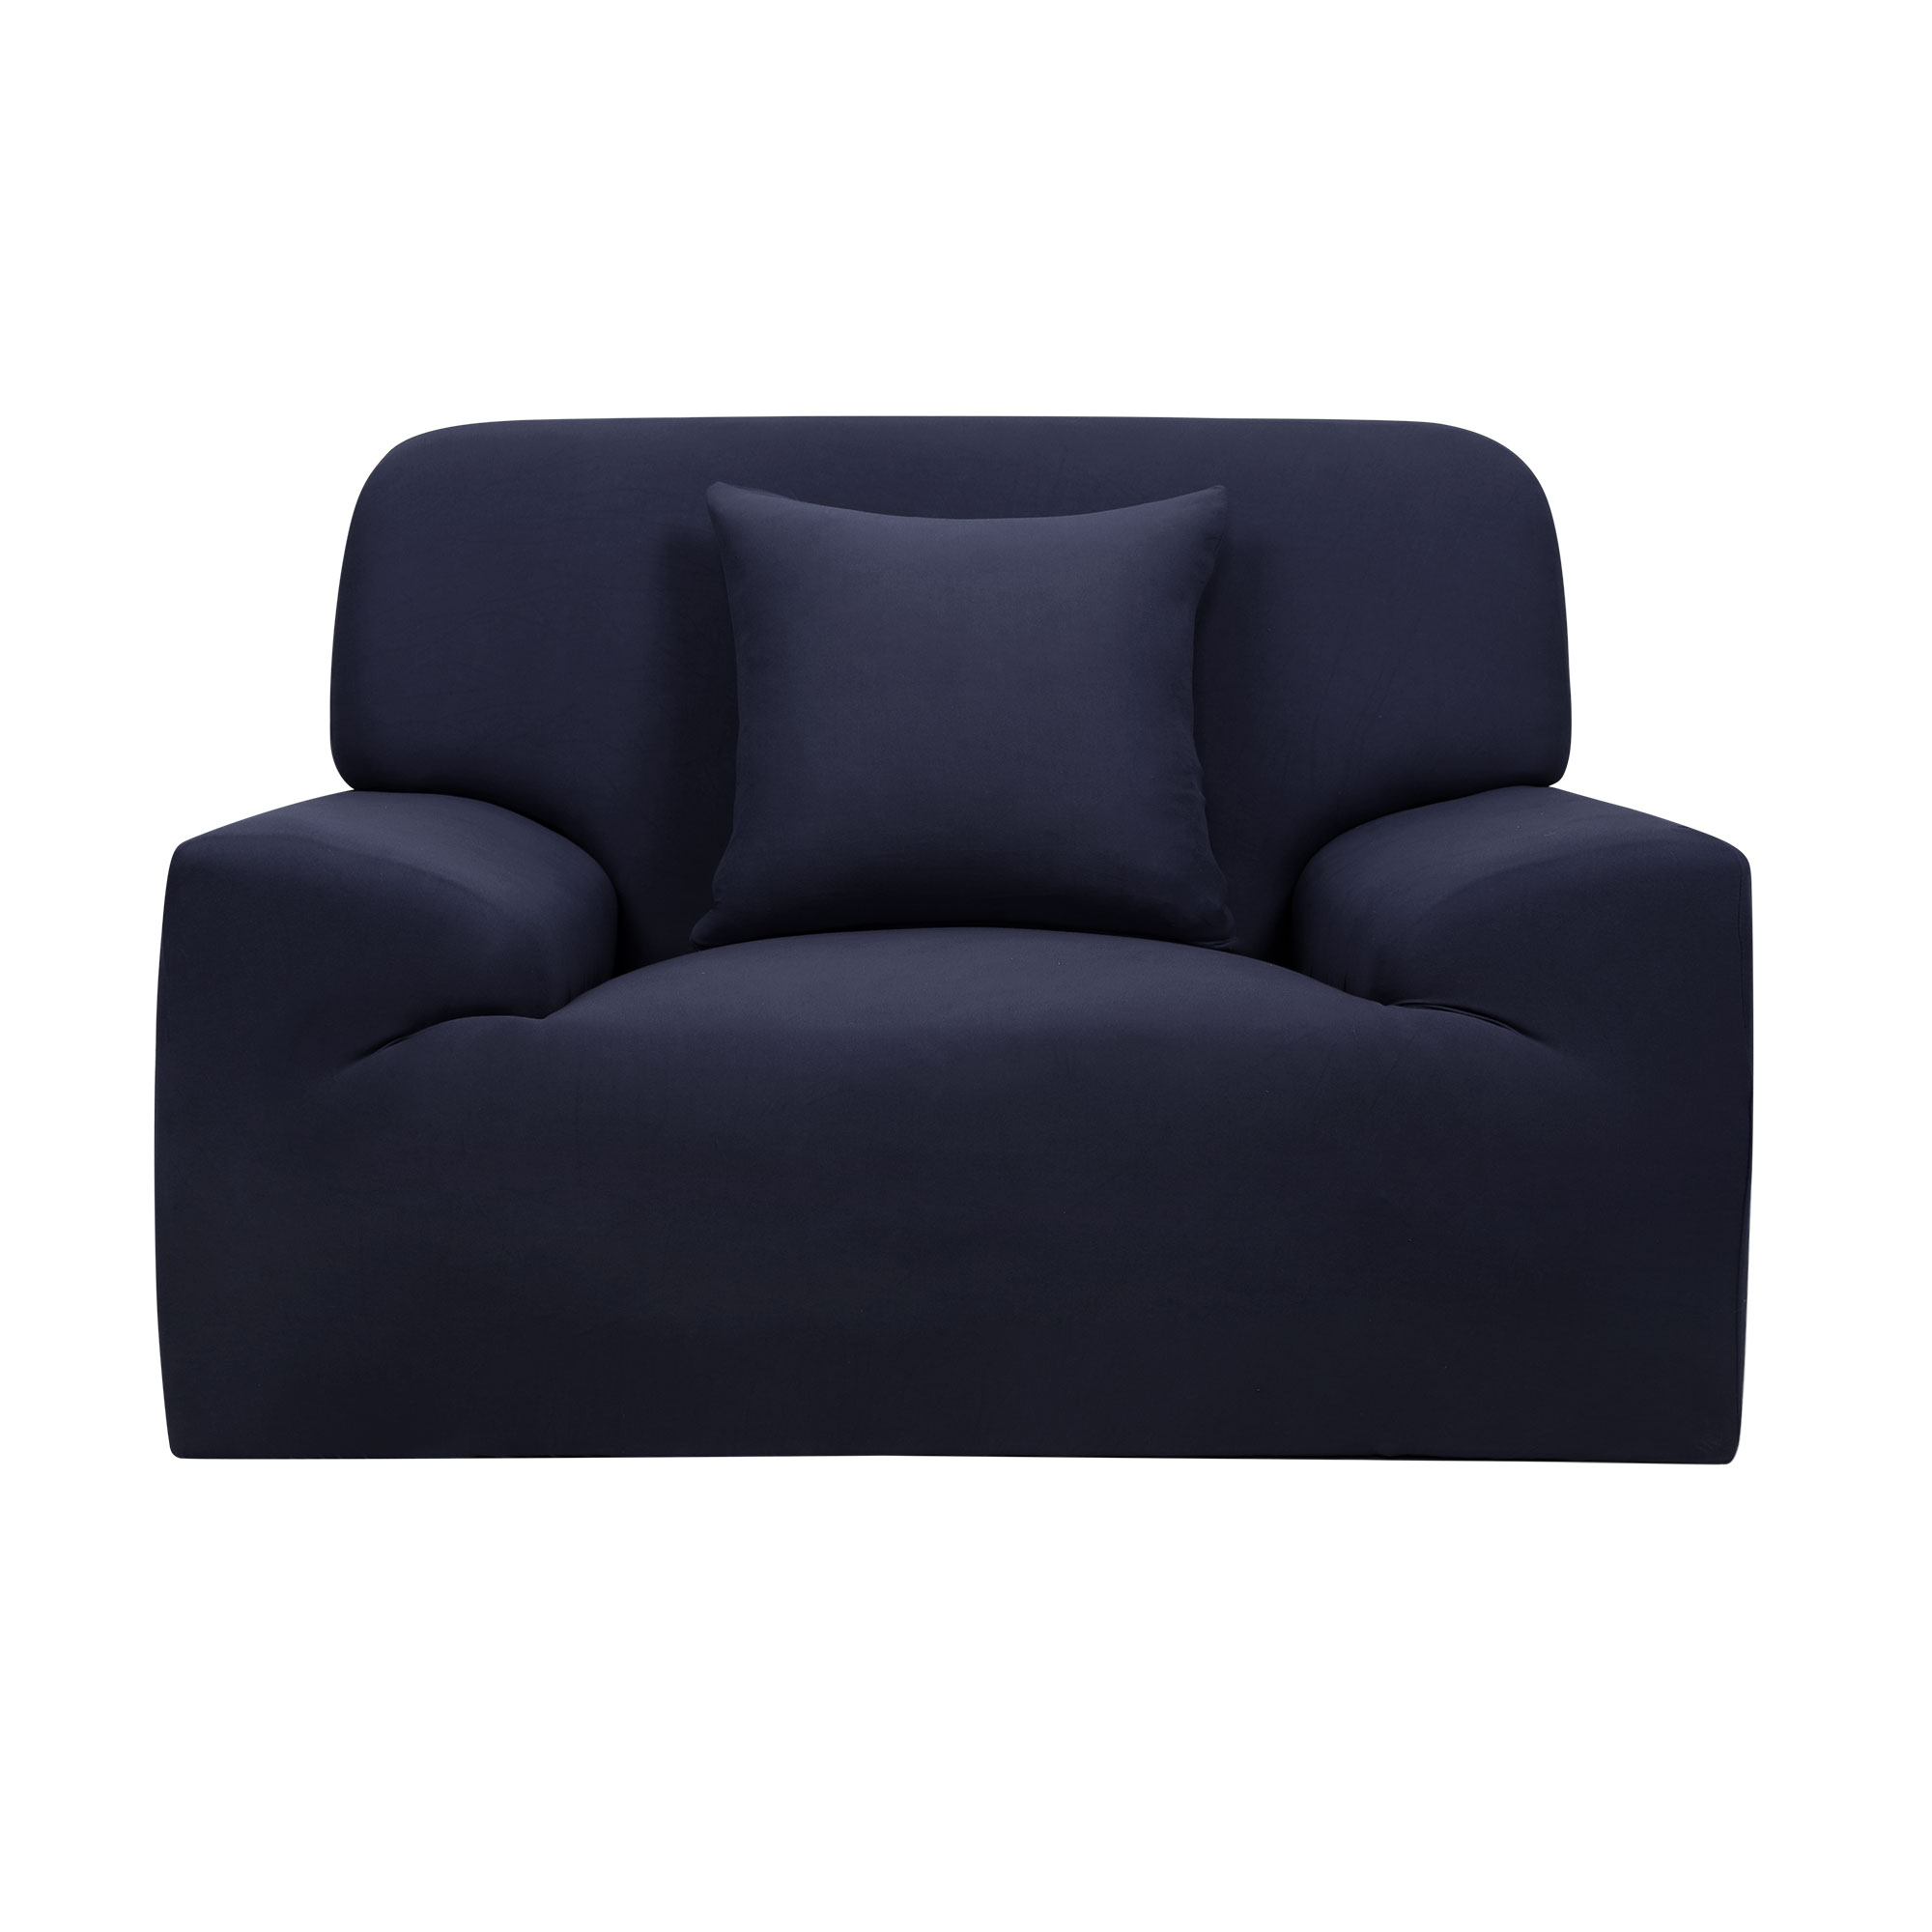 Home Sofa Chair Reversible Stretch Protector Cover Dark Blue 35''-55''